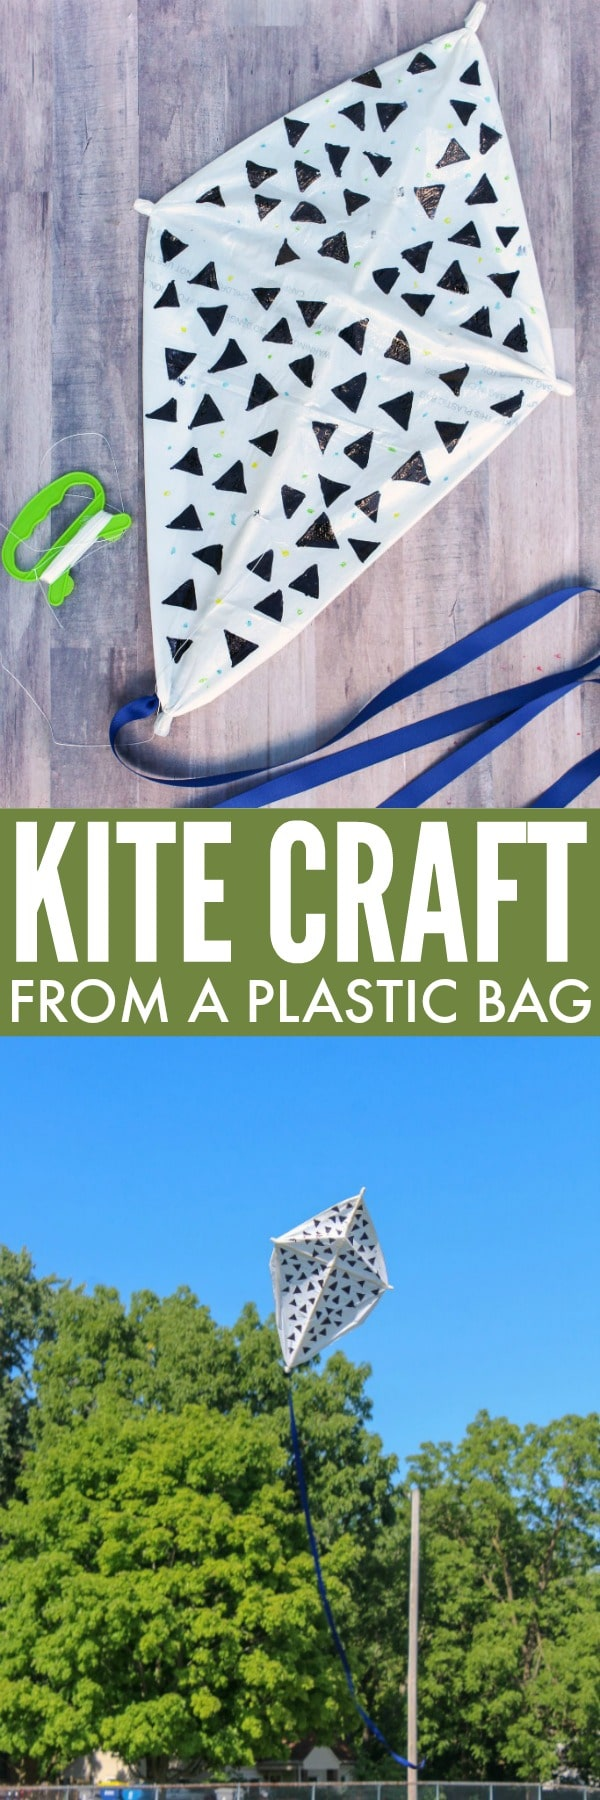 Fun Craft and Activity for Summer: Kite Craft from a Trash Bag!